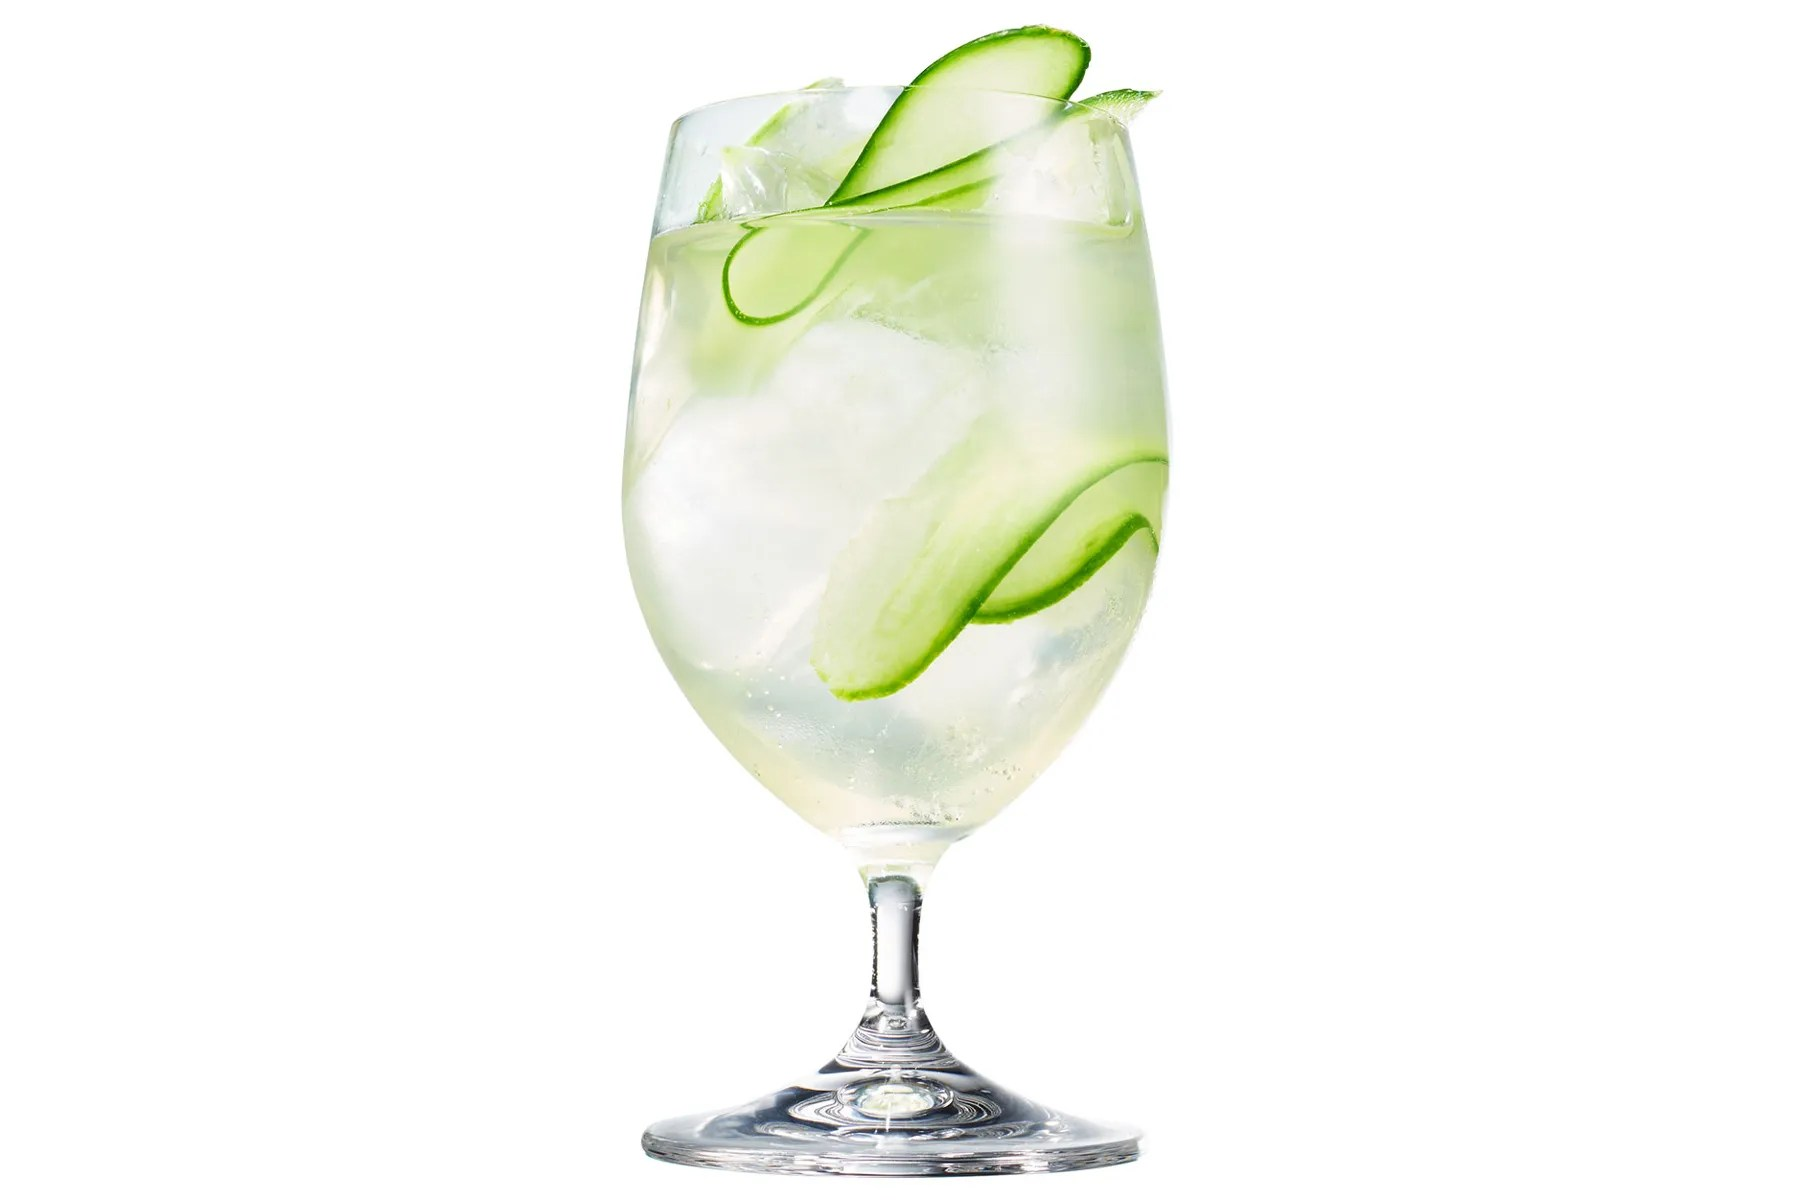 Drink Gin Cucumber Gin Cocktail